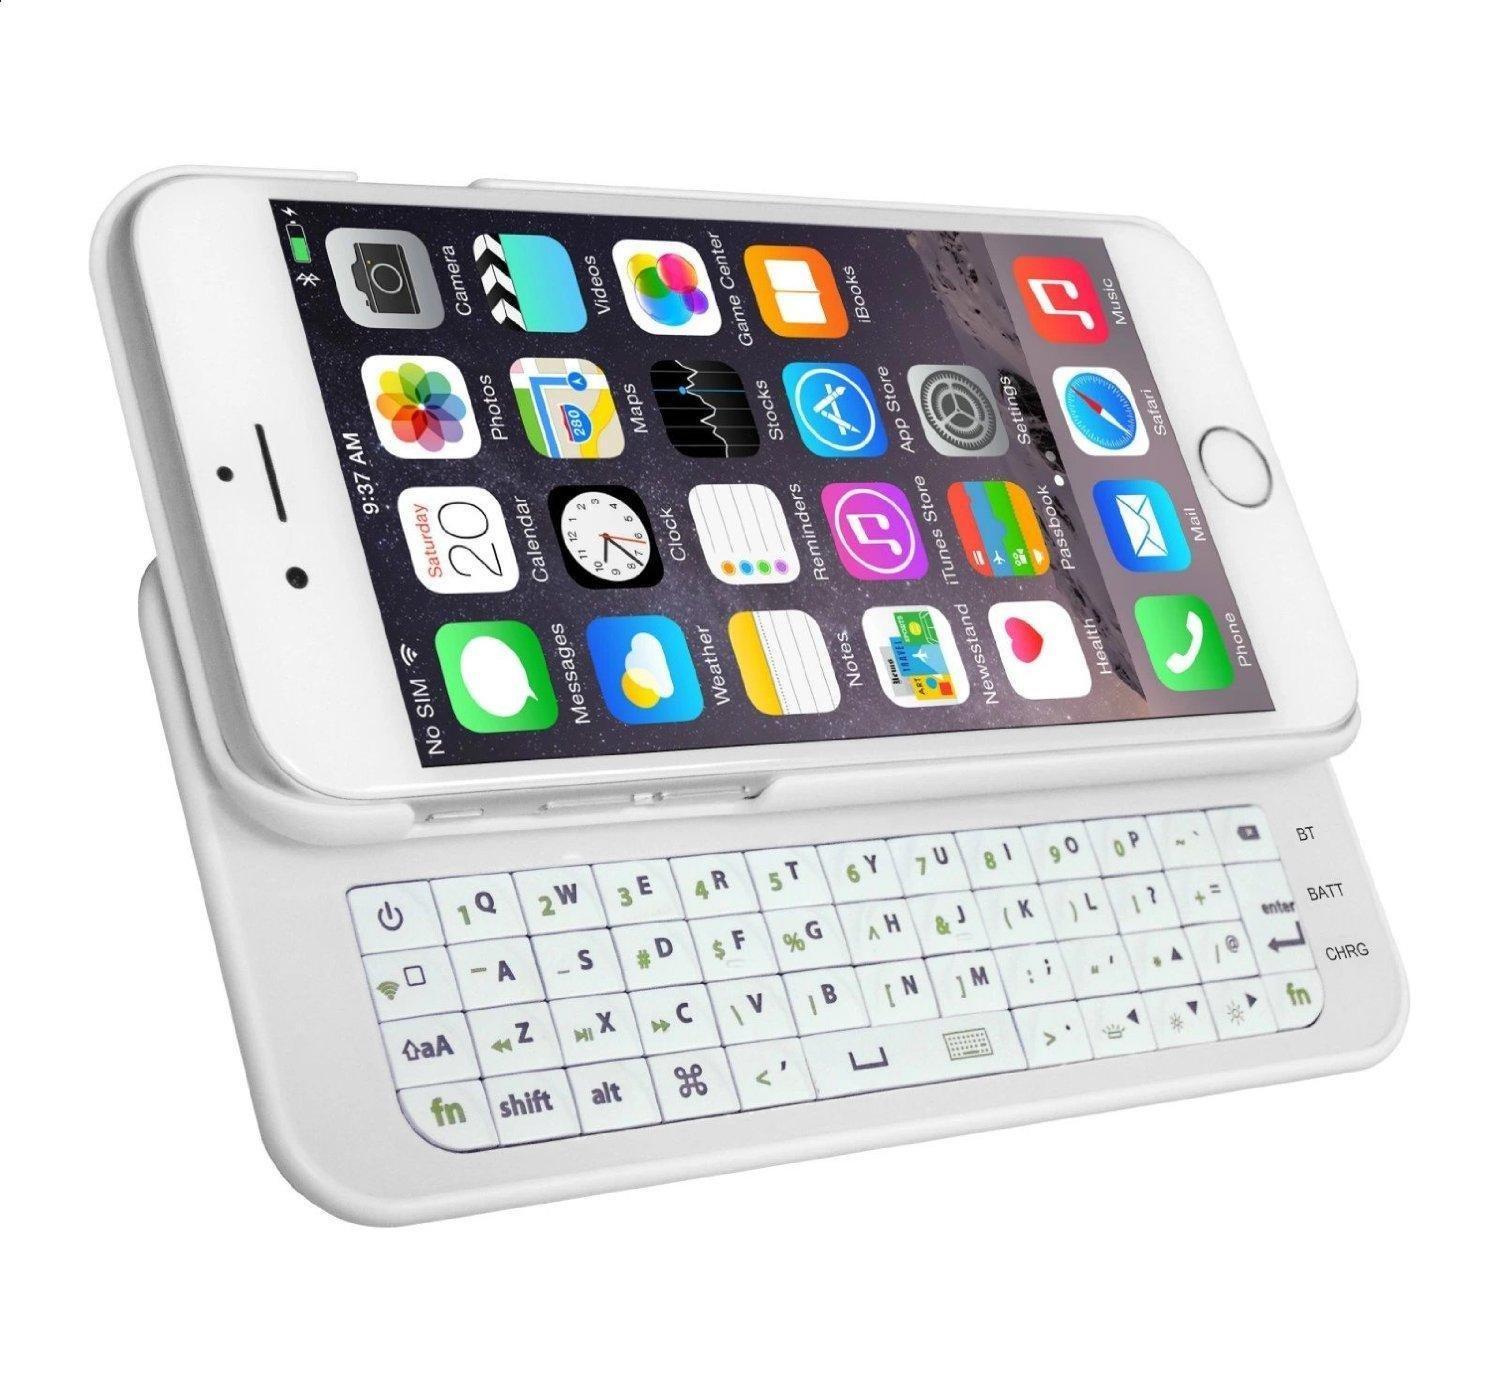 MXtechnic keyboard case for iPhone 6